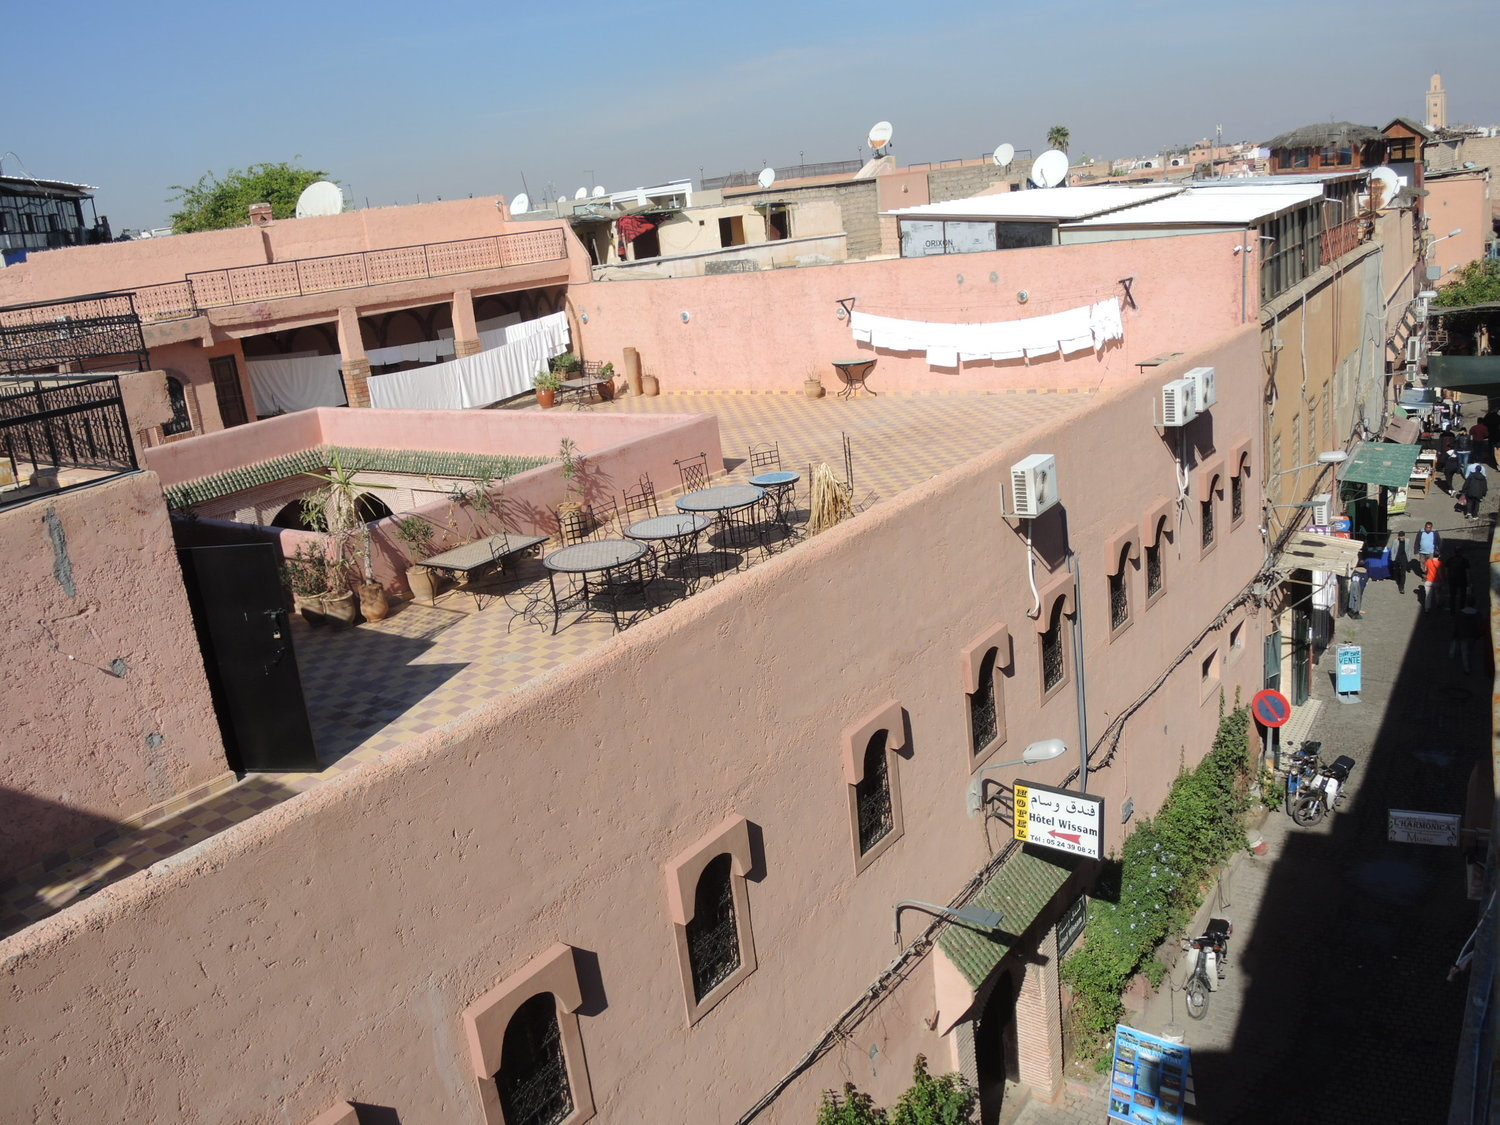 View from the rooftops of Marrakech